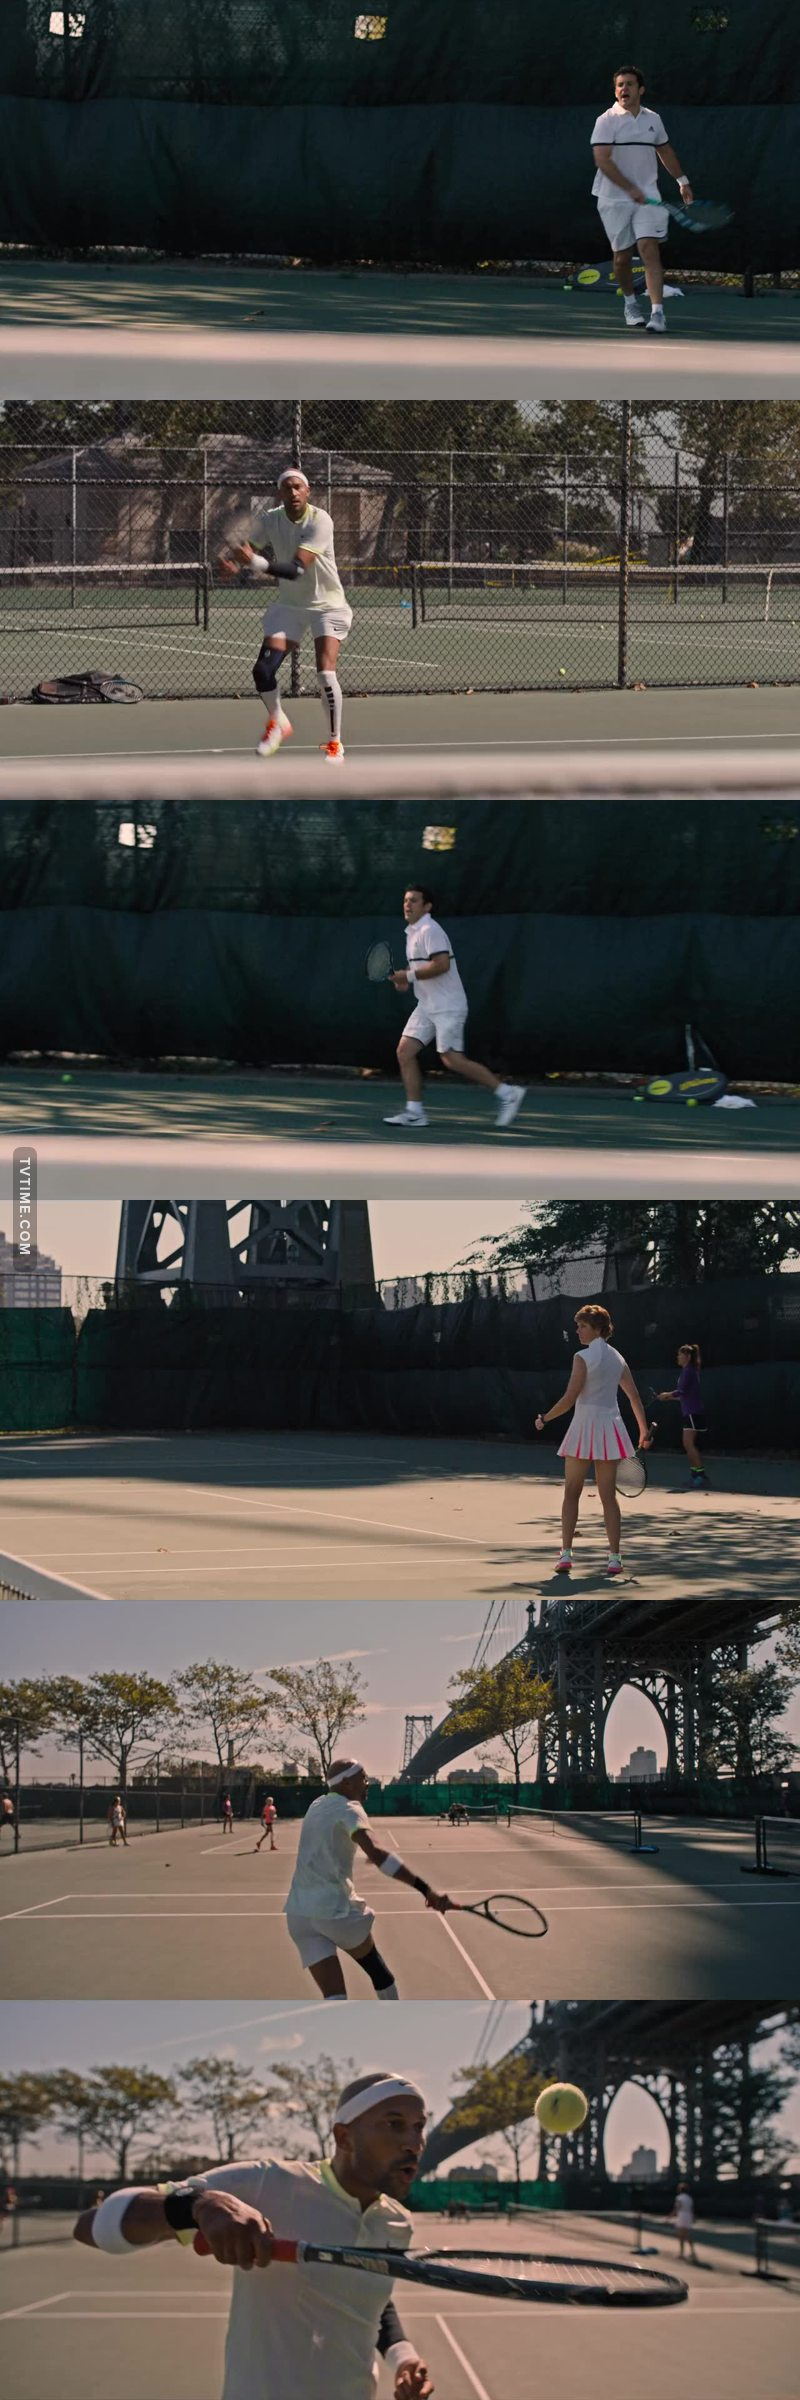 This scene was the funniest I've seen in a while, I was crying from laughter.. The noises they were making when playing tennis hahahahahahahahahah